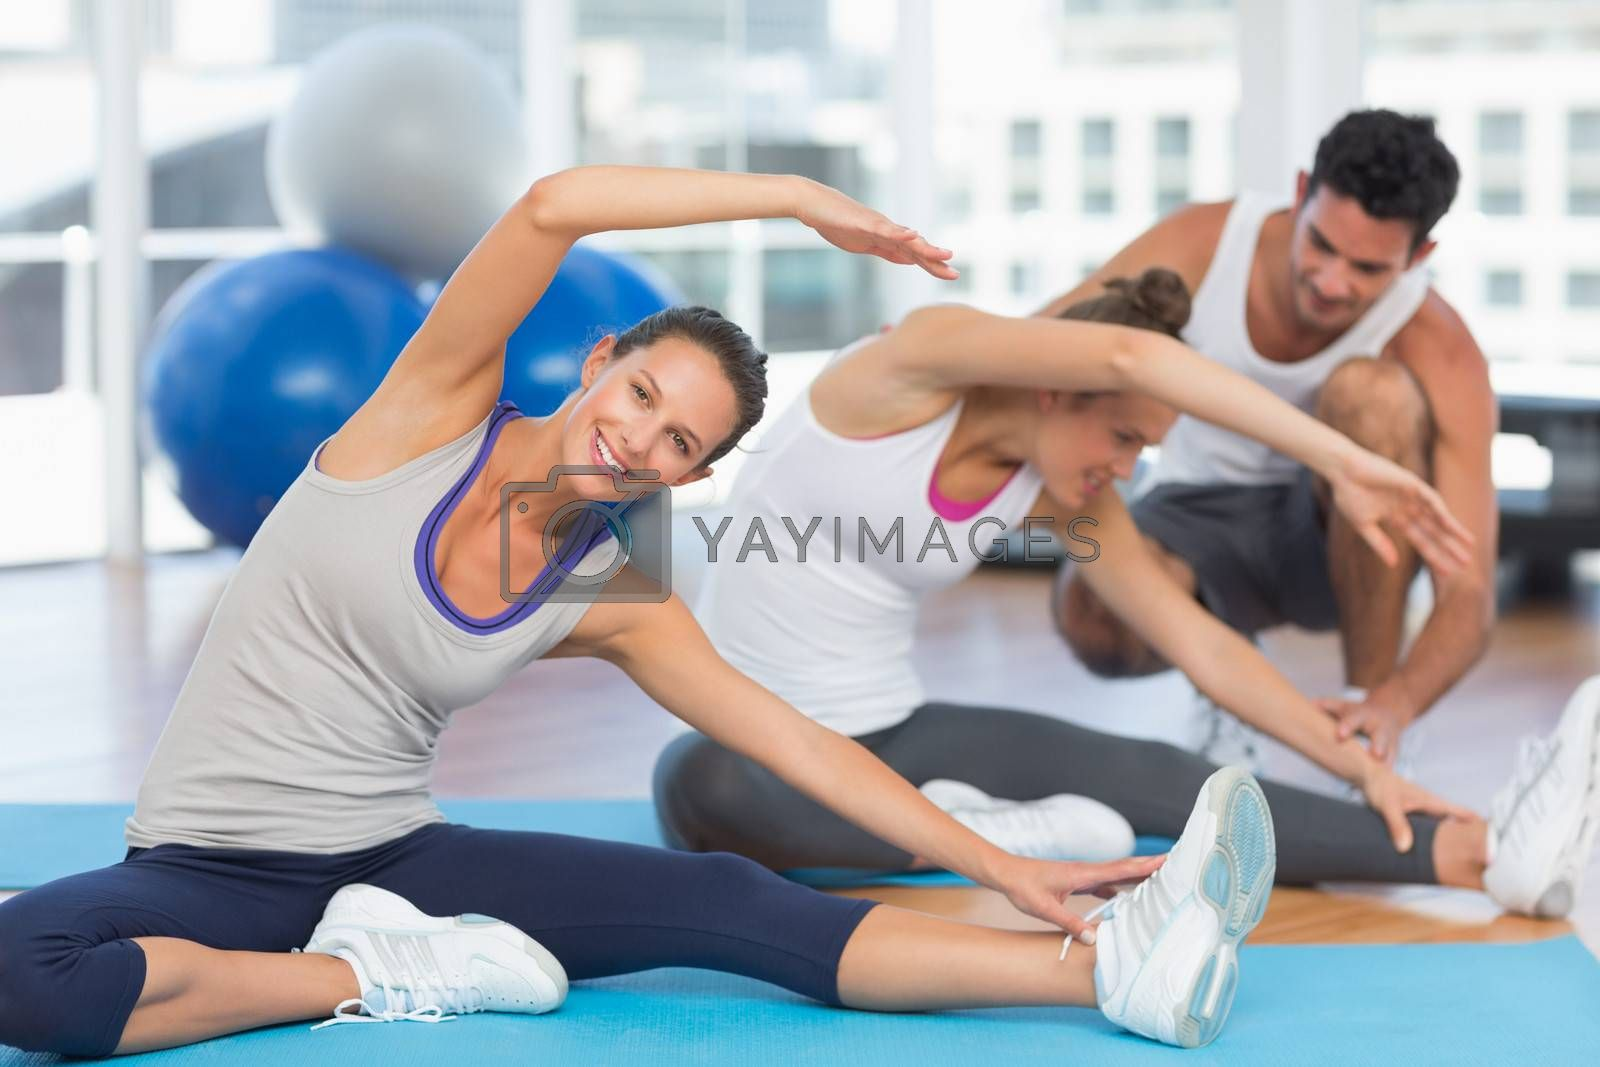 Women doing stretching exercises as trainer helps one at fitness studio